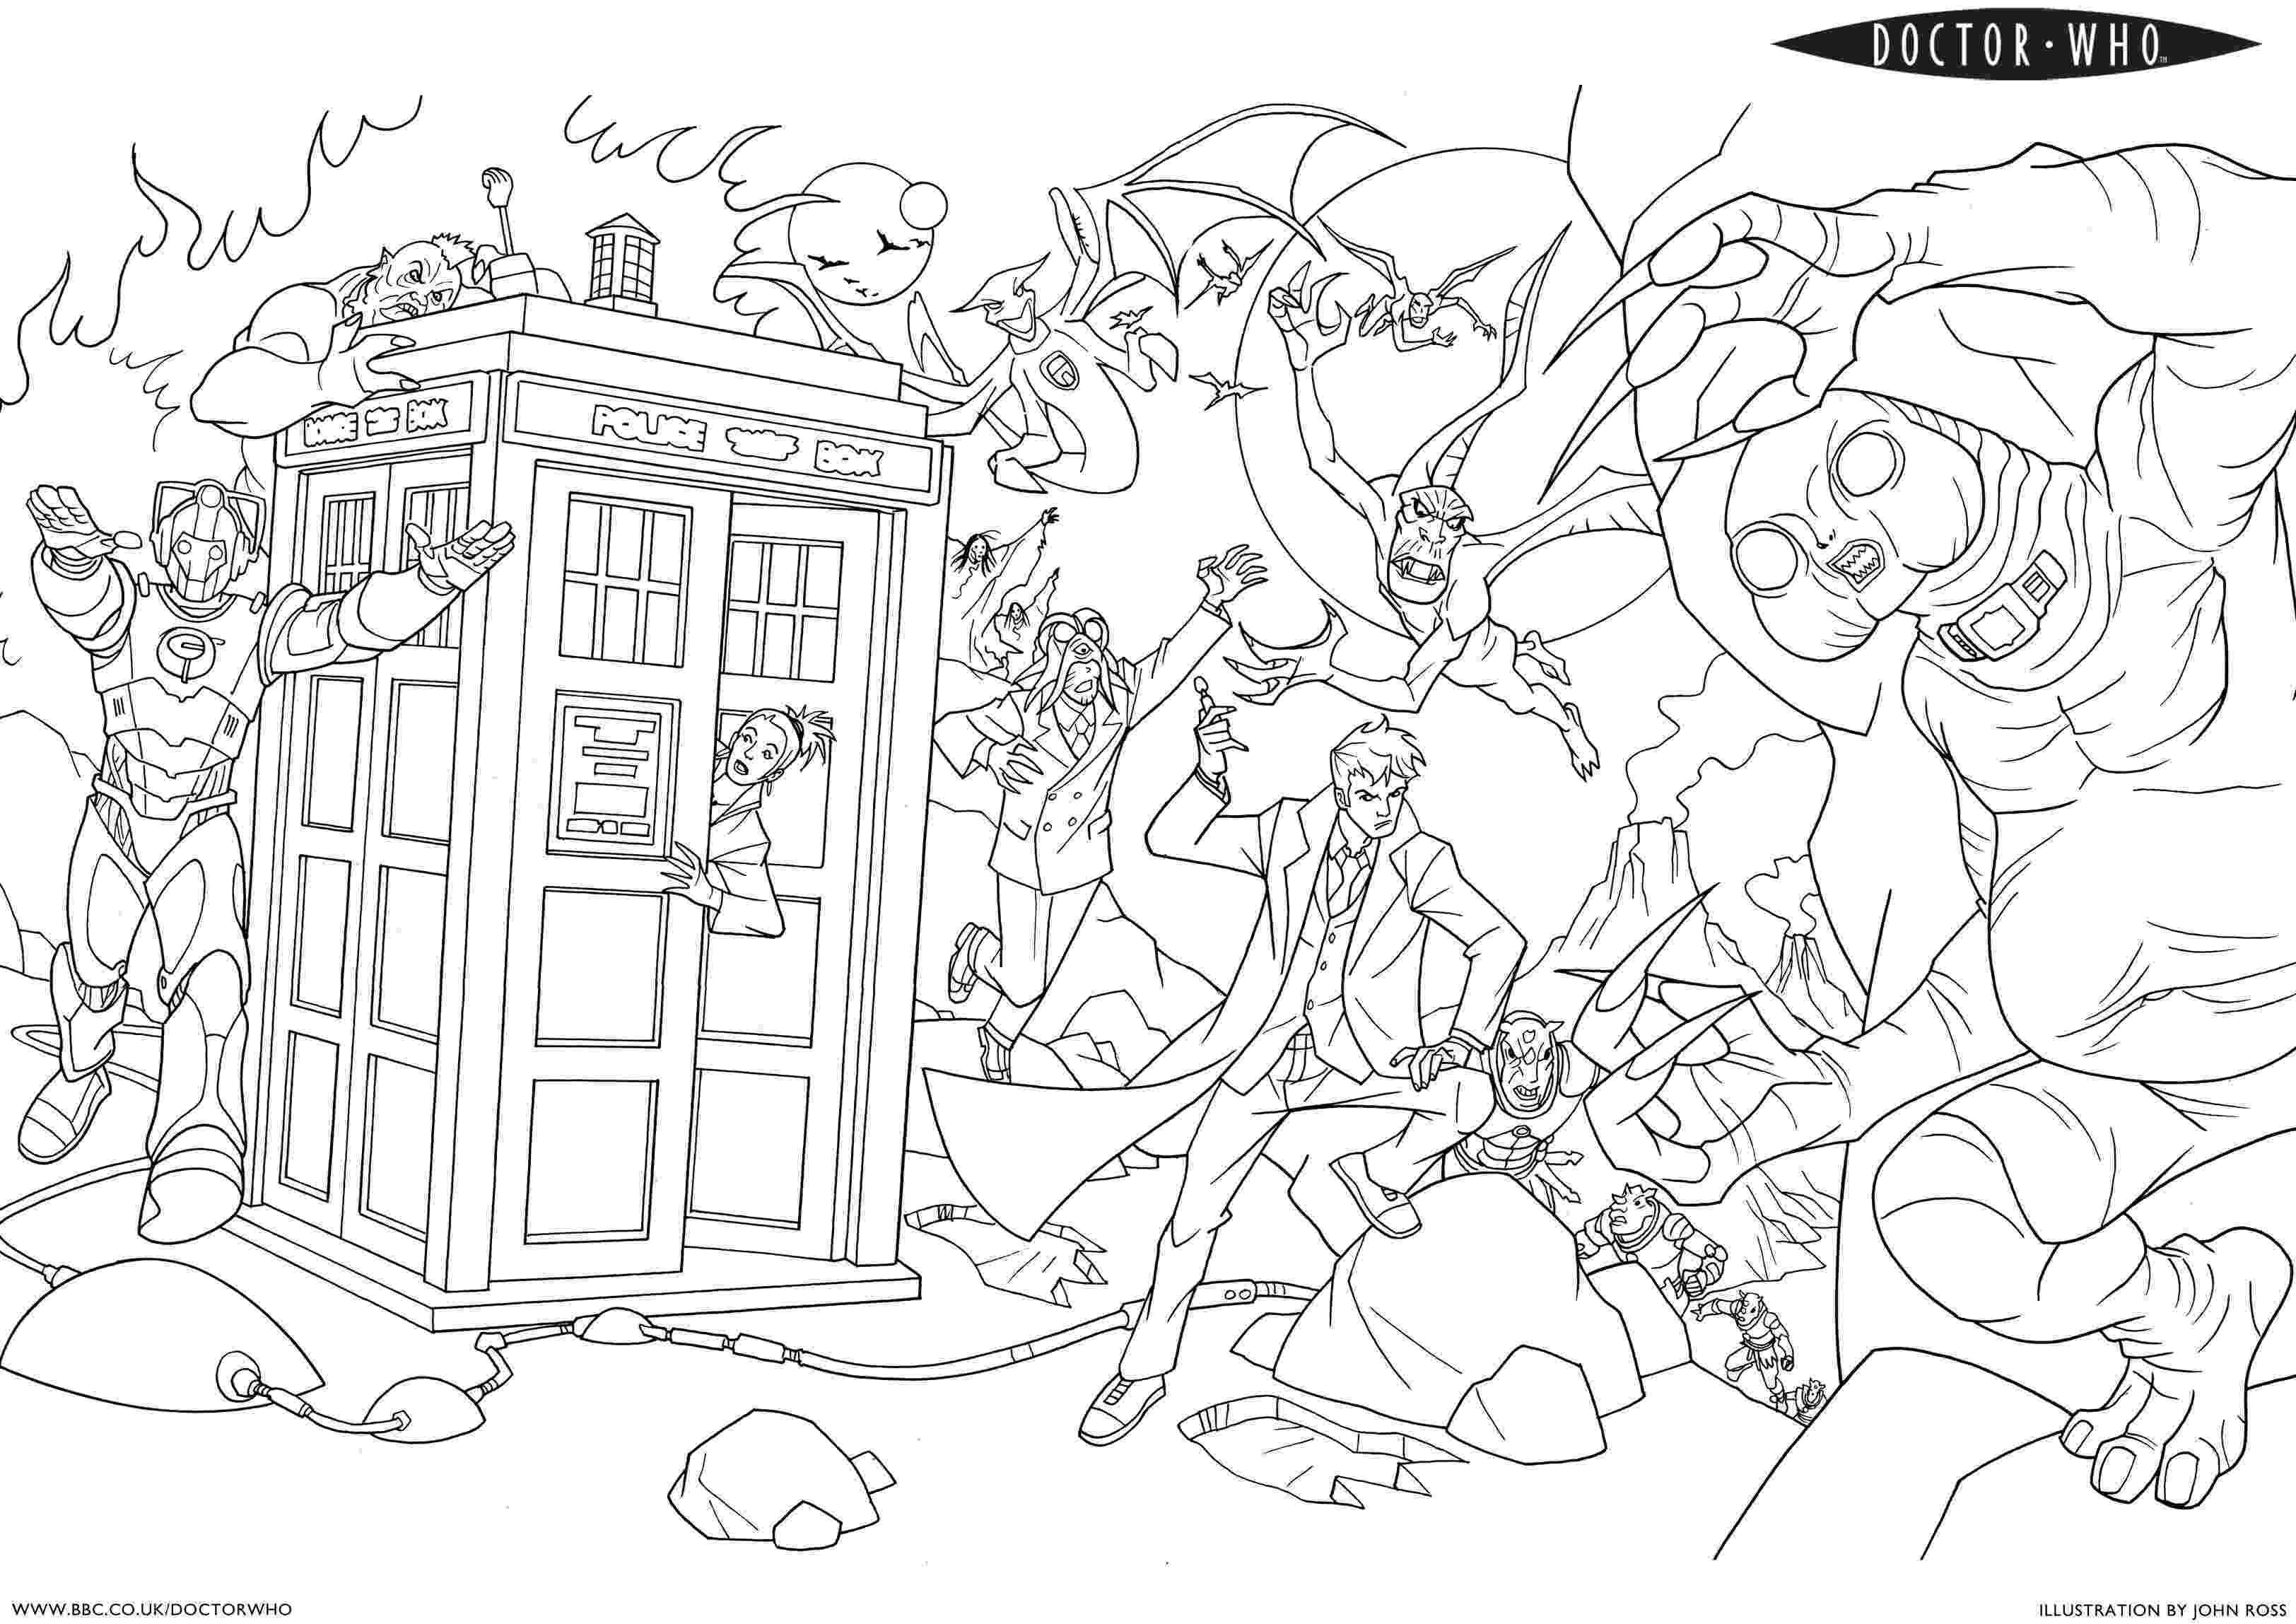 doctor who tardis coloring pages doctor who coloring pages bbc doctor who colouring coloring tardis pages doctor who